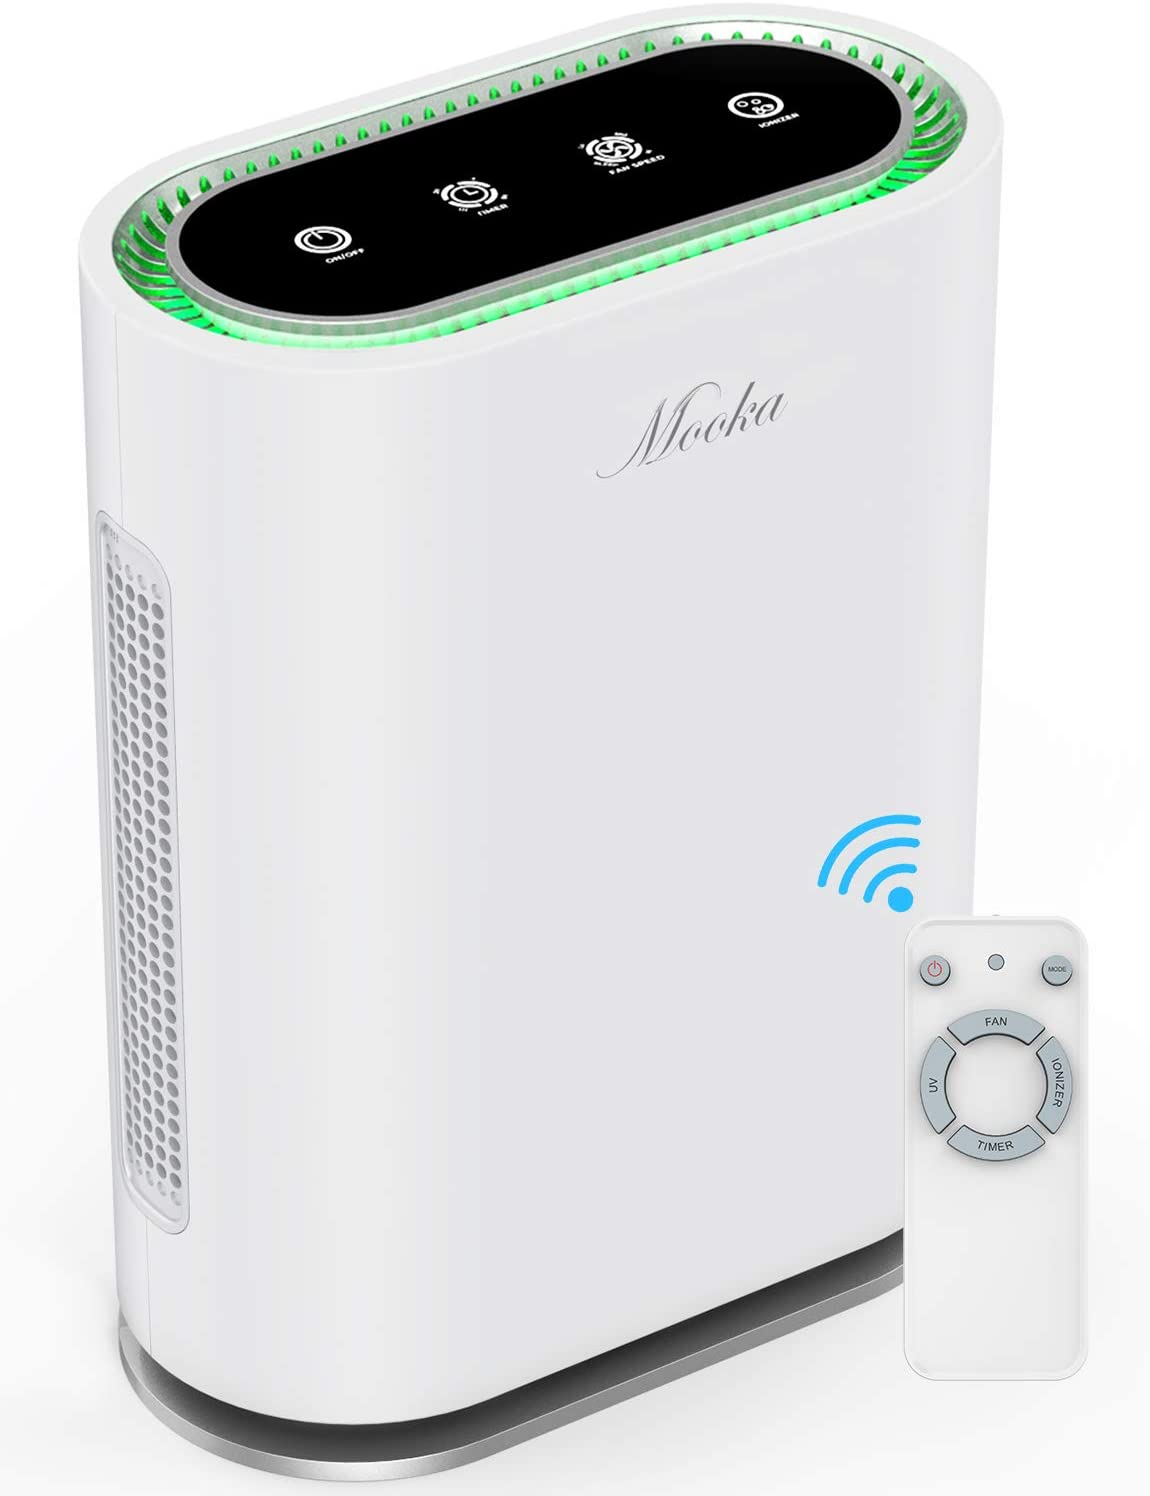 MOOKA True HEPA+ Air Purifier, Large Room to 540ft², 6-Point Filtration, Odor Eliminator for Allergies and Pets, Ionic & UV-C Sterilizer, Air Cleaner for Office & Home, Rid of Virus, Mold, Smoke, Odor